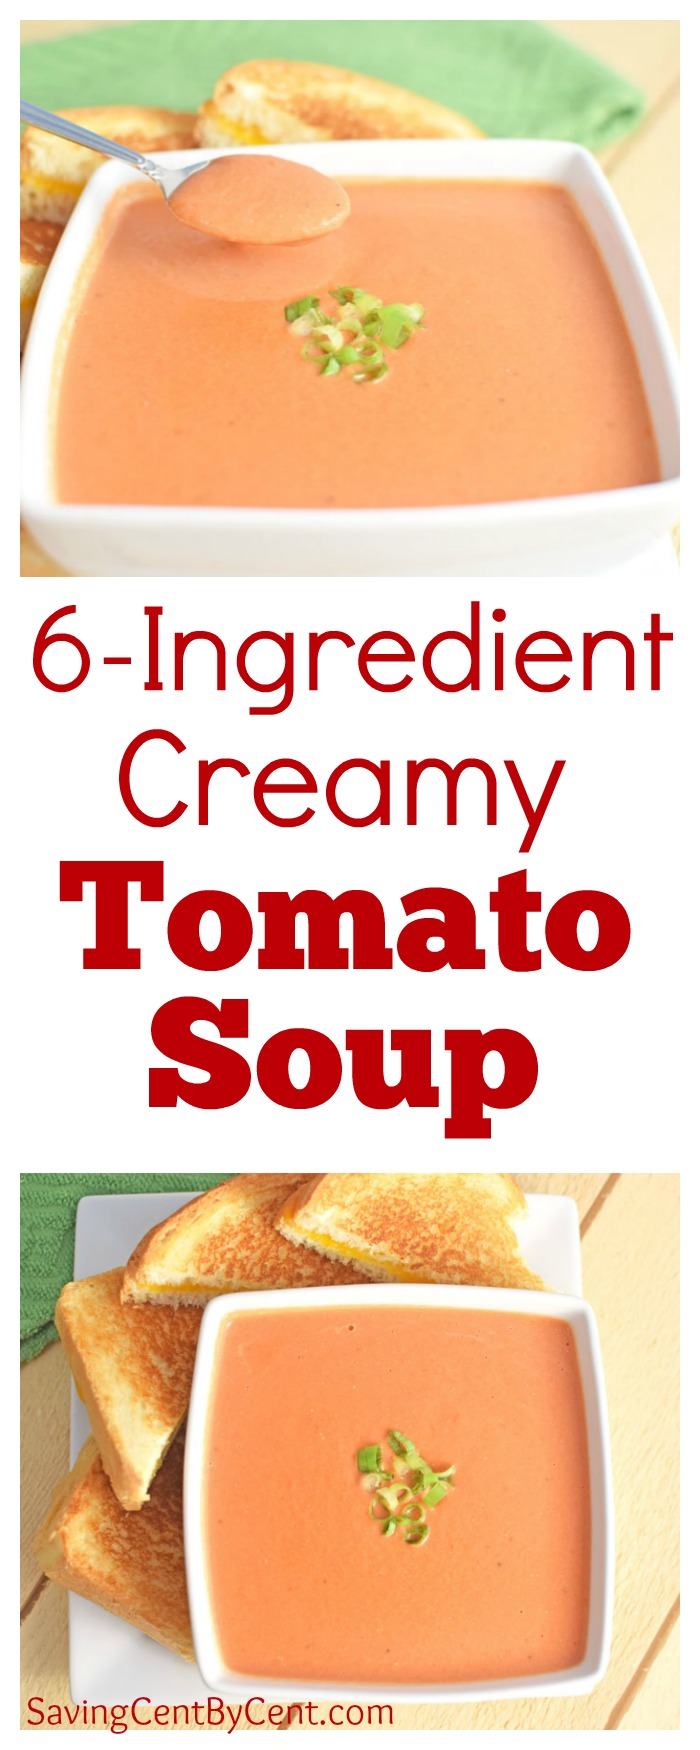 6 Ingredient Creamy Tomato Soup